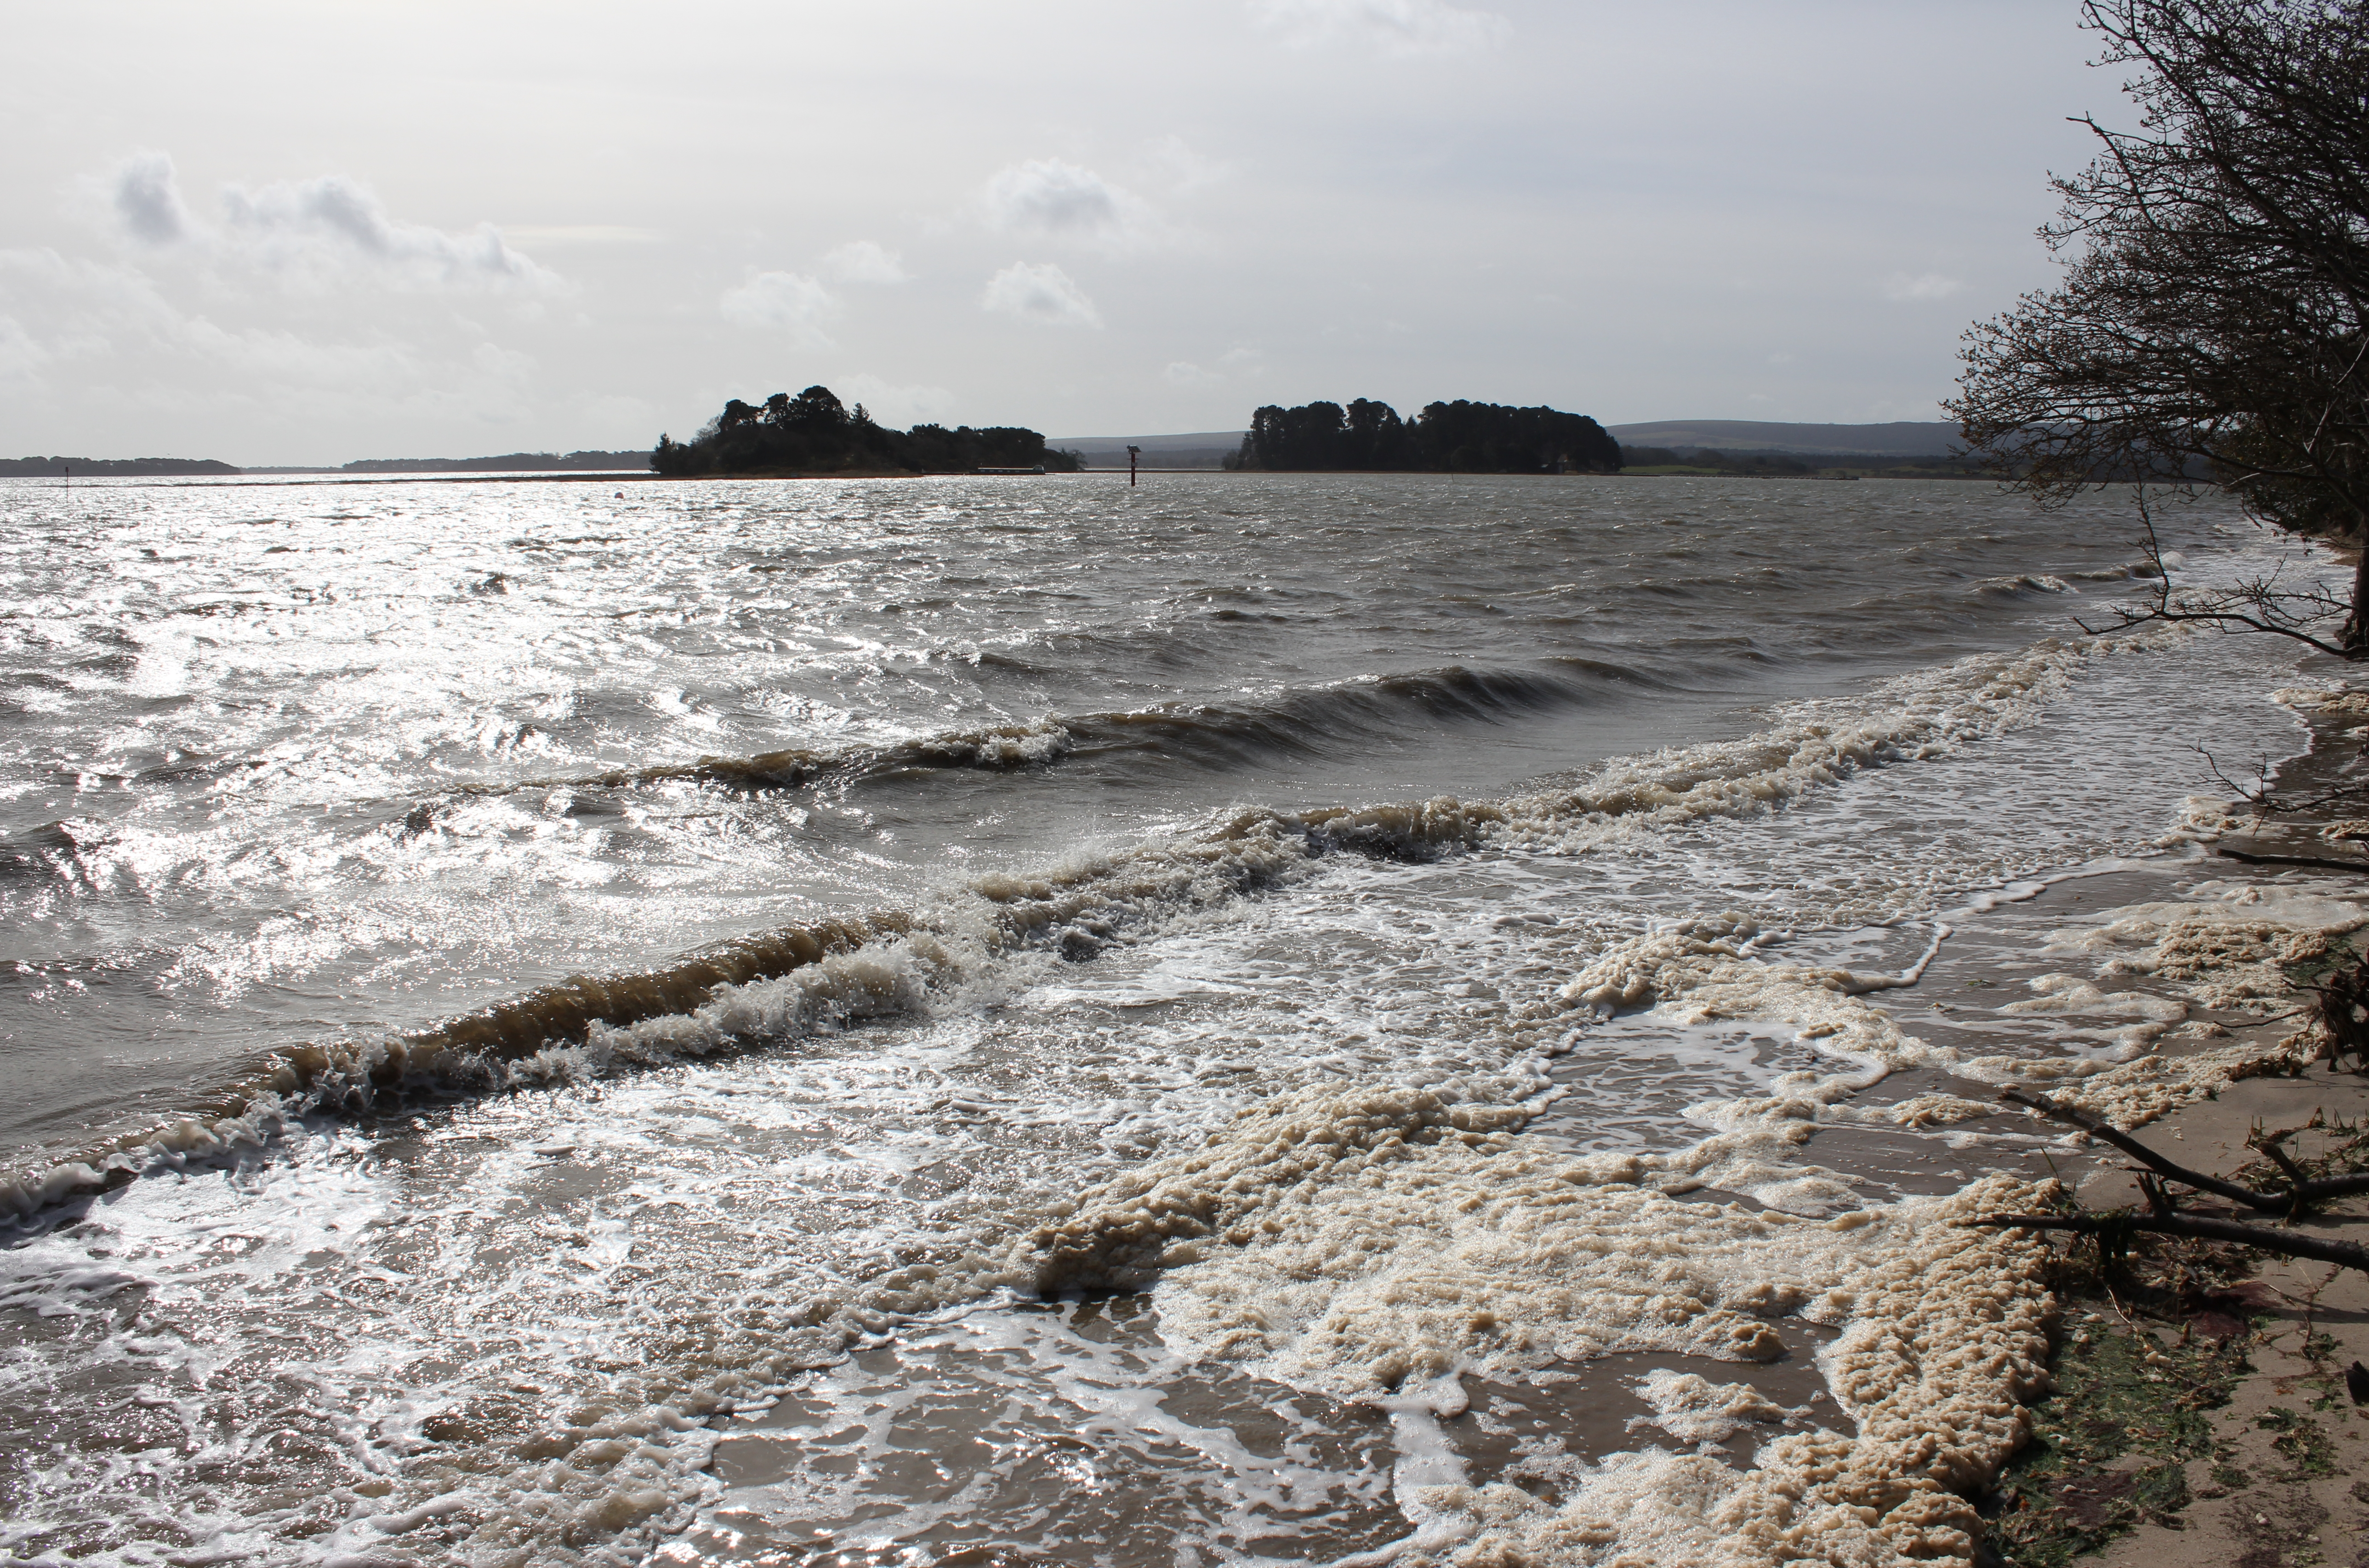 Long Island and Round Island from Shipstal Point during a windy morning and spring high tide in April 2016.